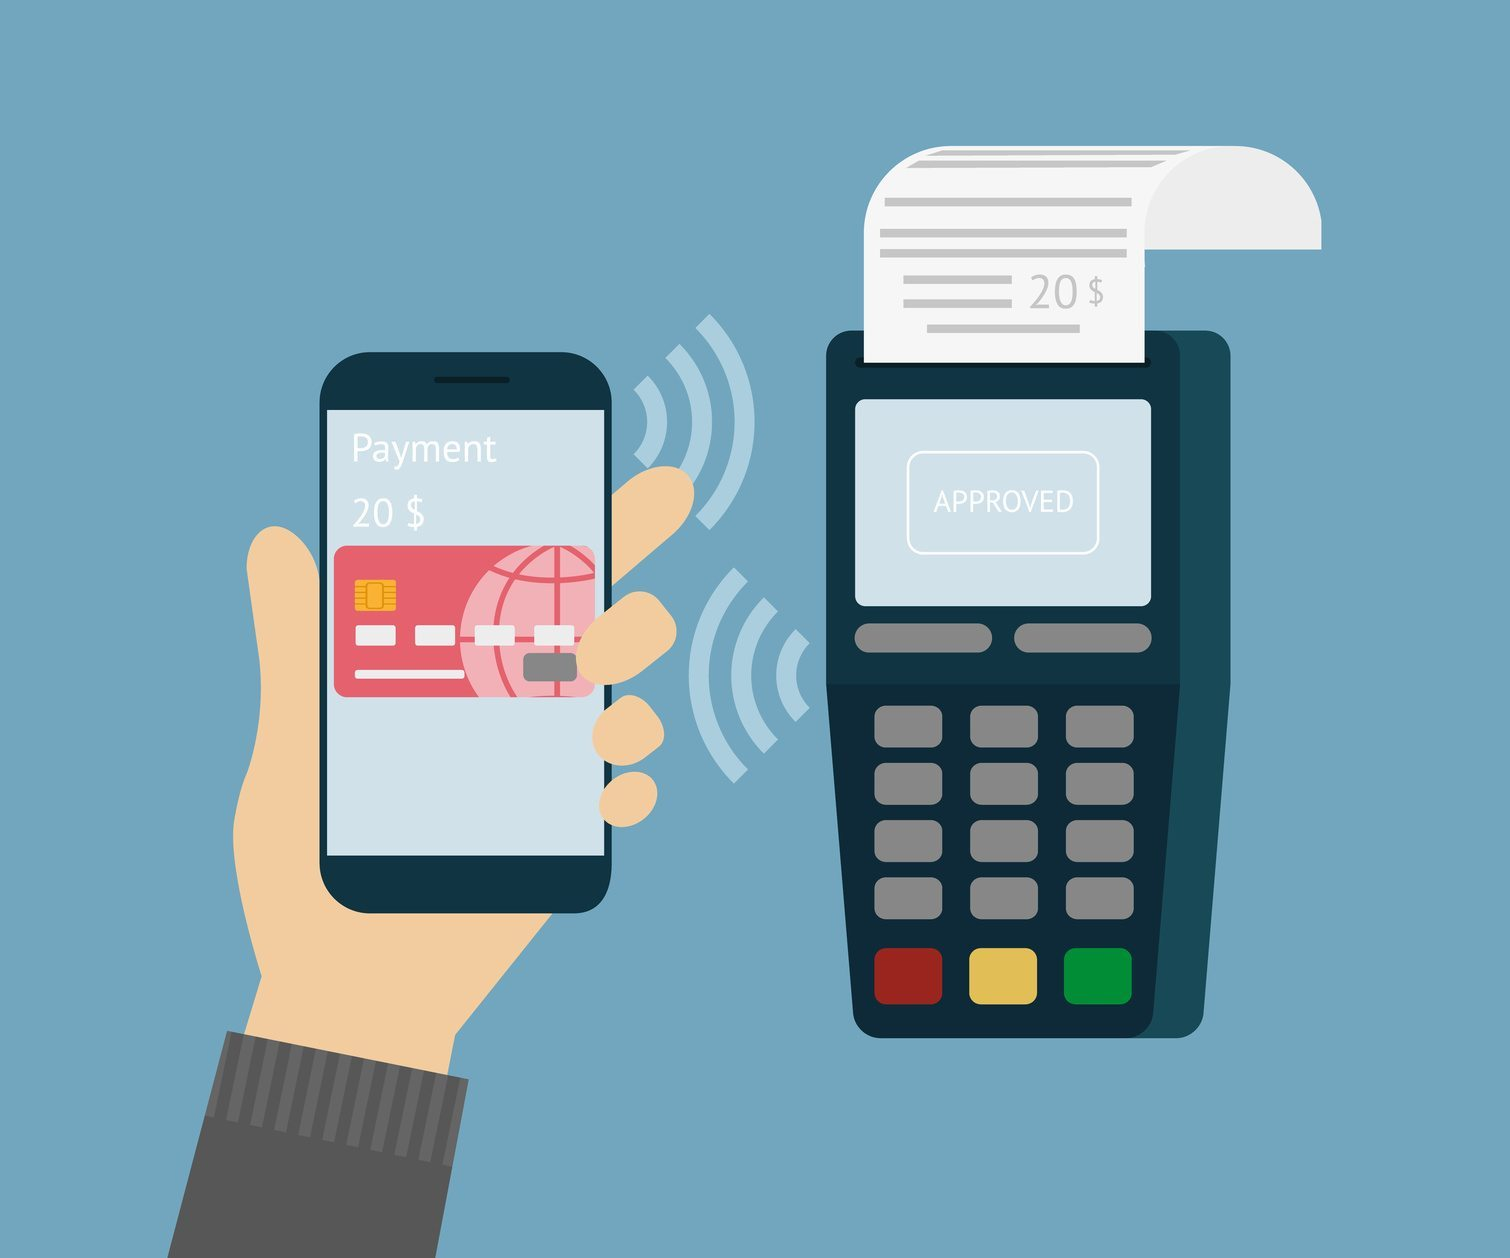 Mobile-Payments-300x300